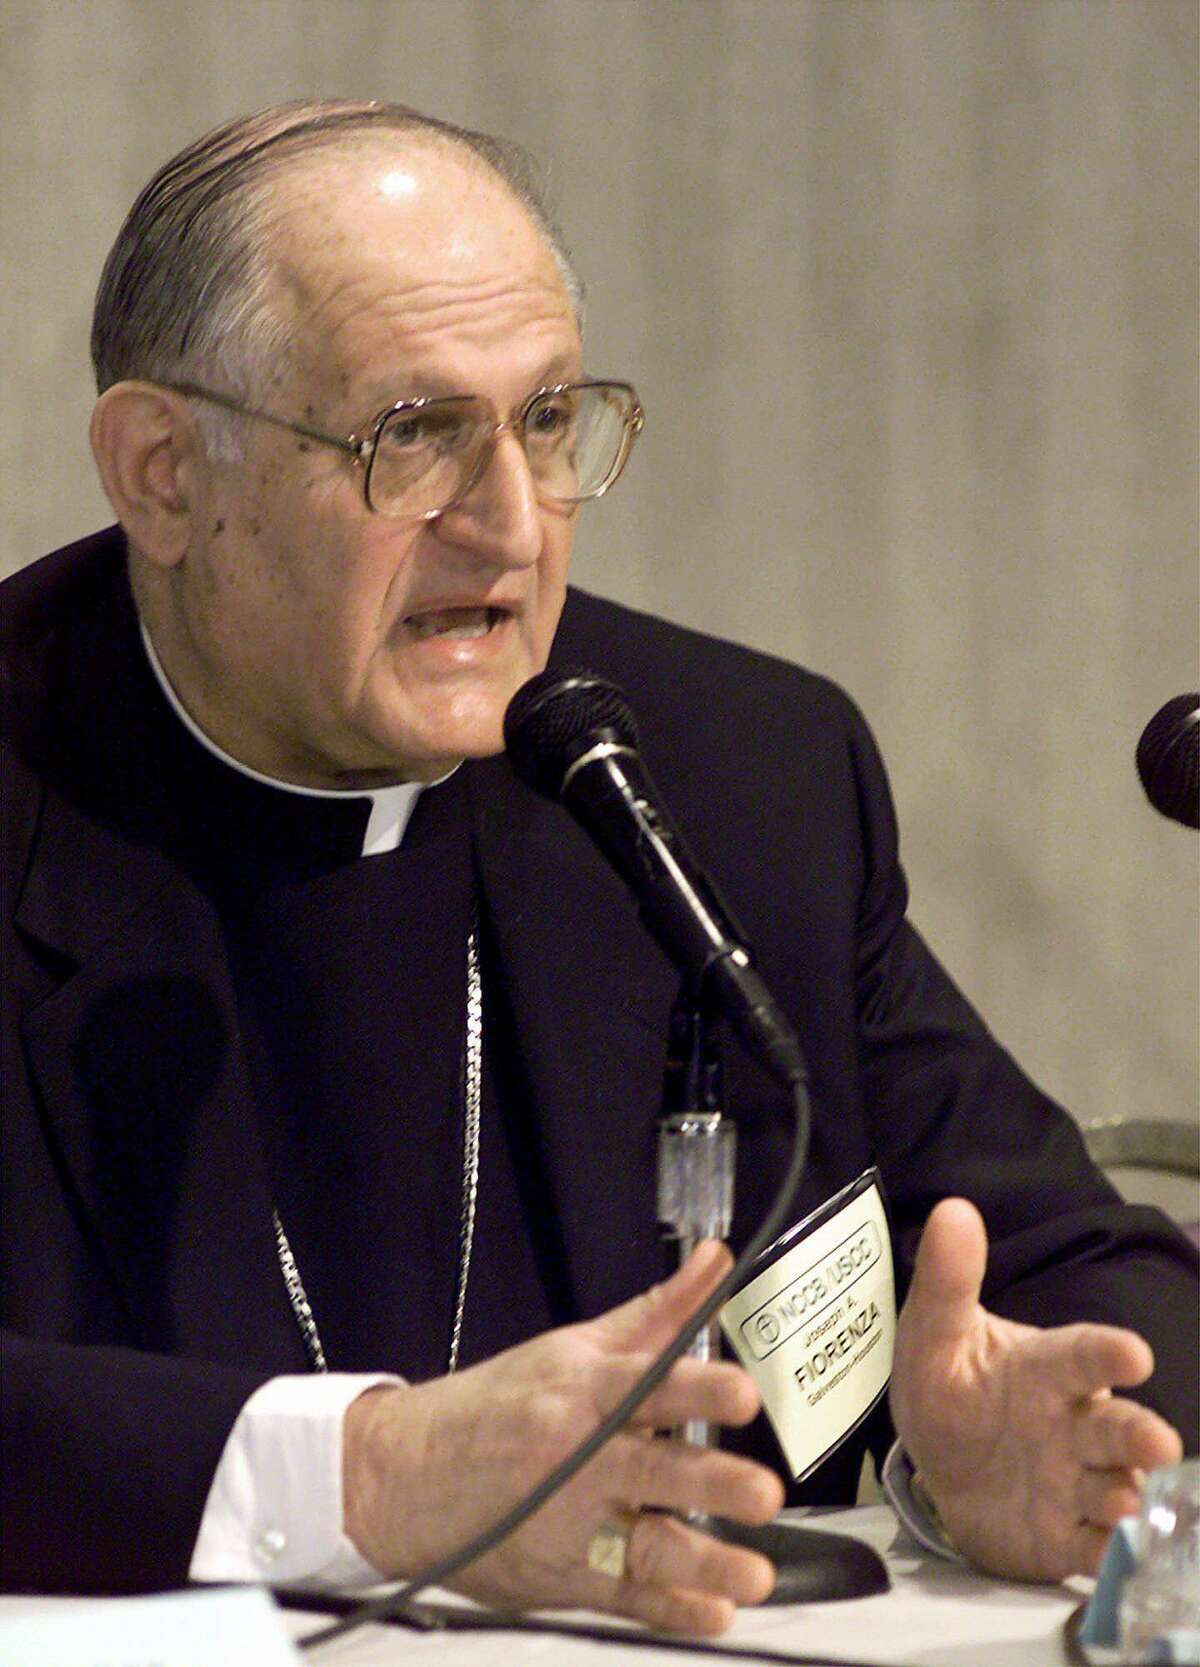 Archbishop Joseph Fiorenza, shown in this November 1999 file photo when he served as president of the National Conference of Catholic Bishops, is one of four priests with the Archdiocese of Galveston-Houston who have tested positive for COVID-19.